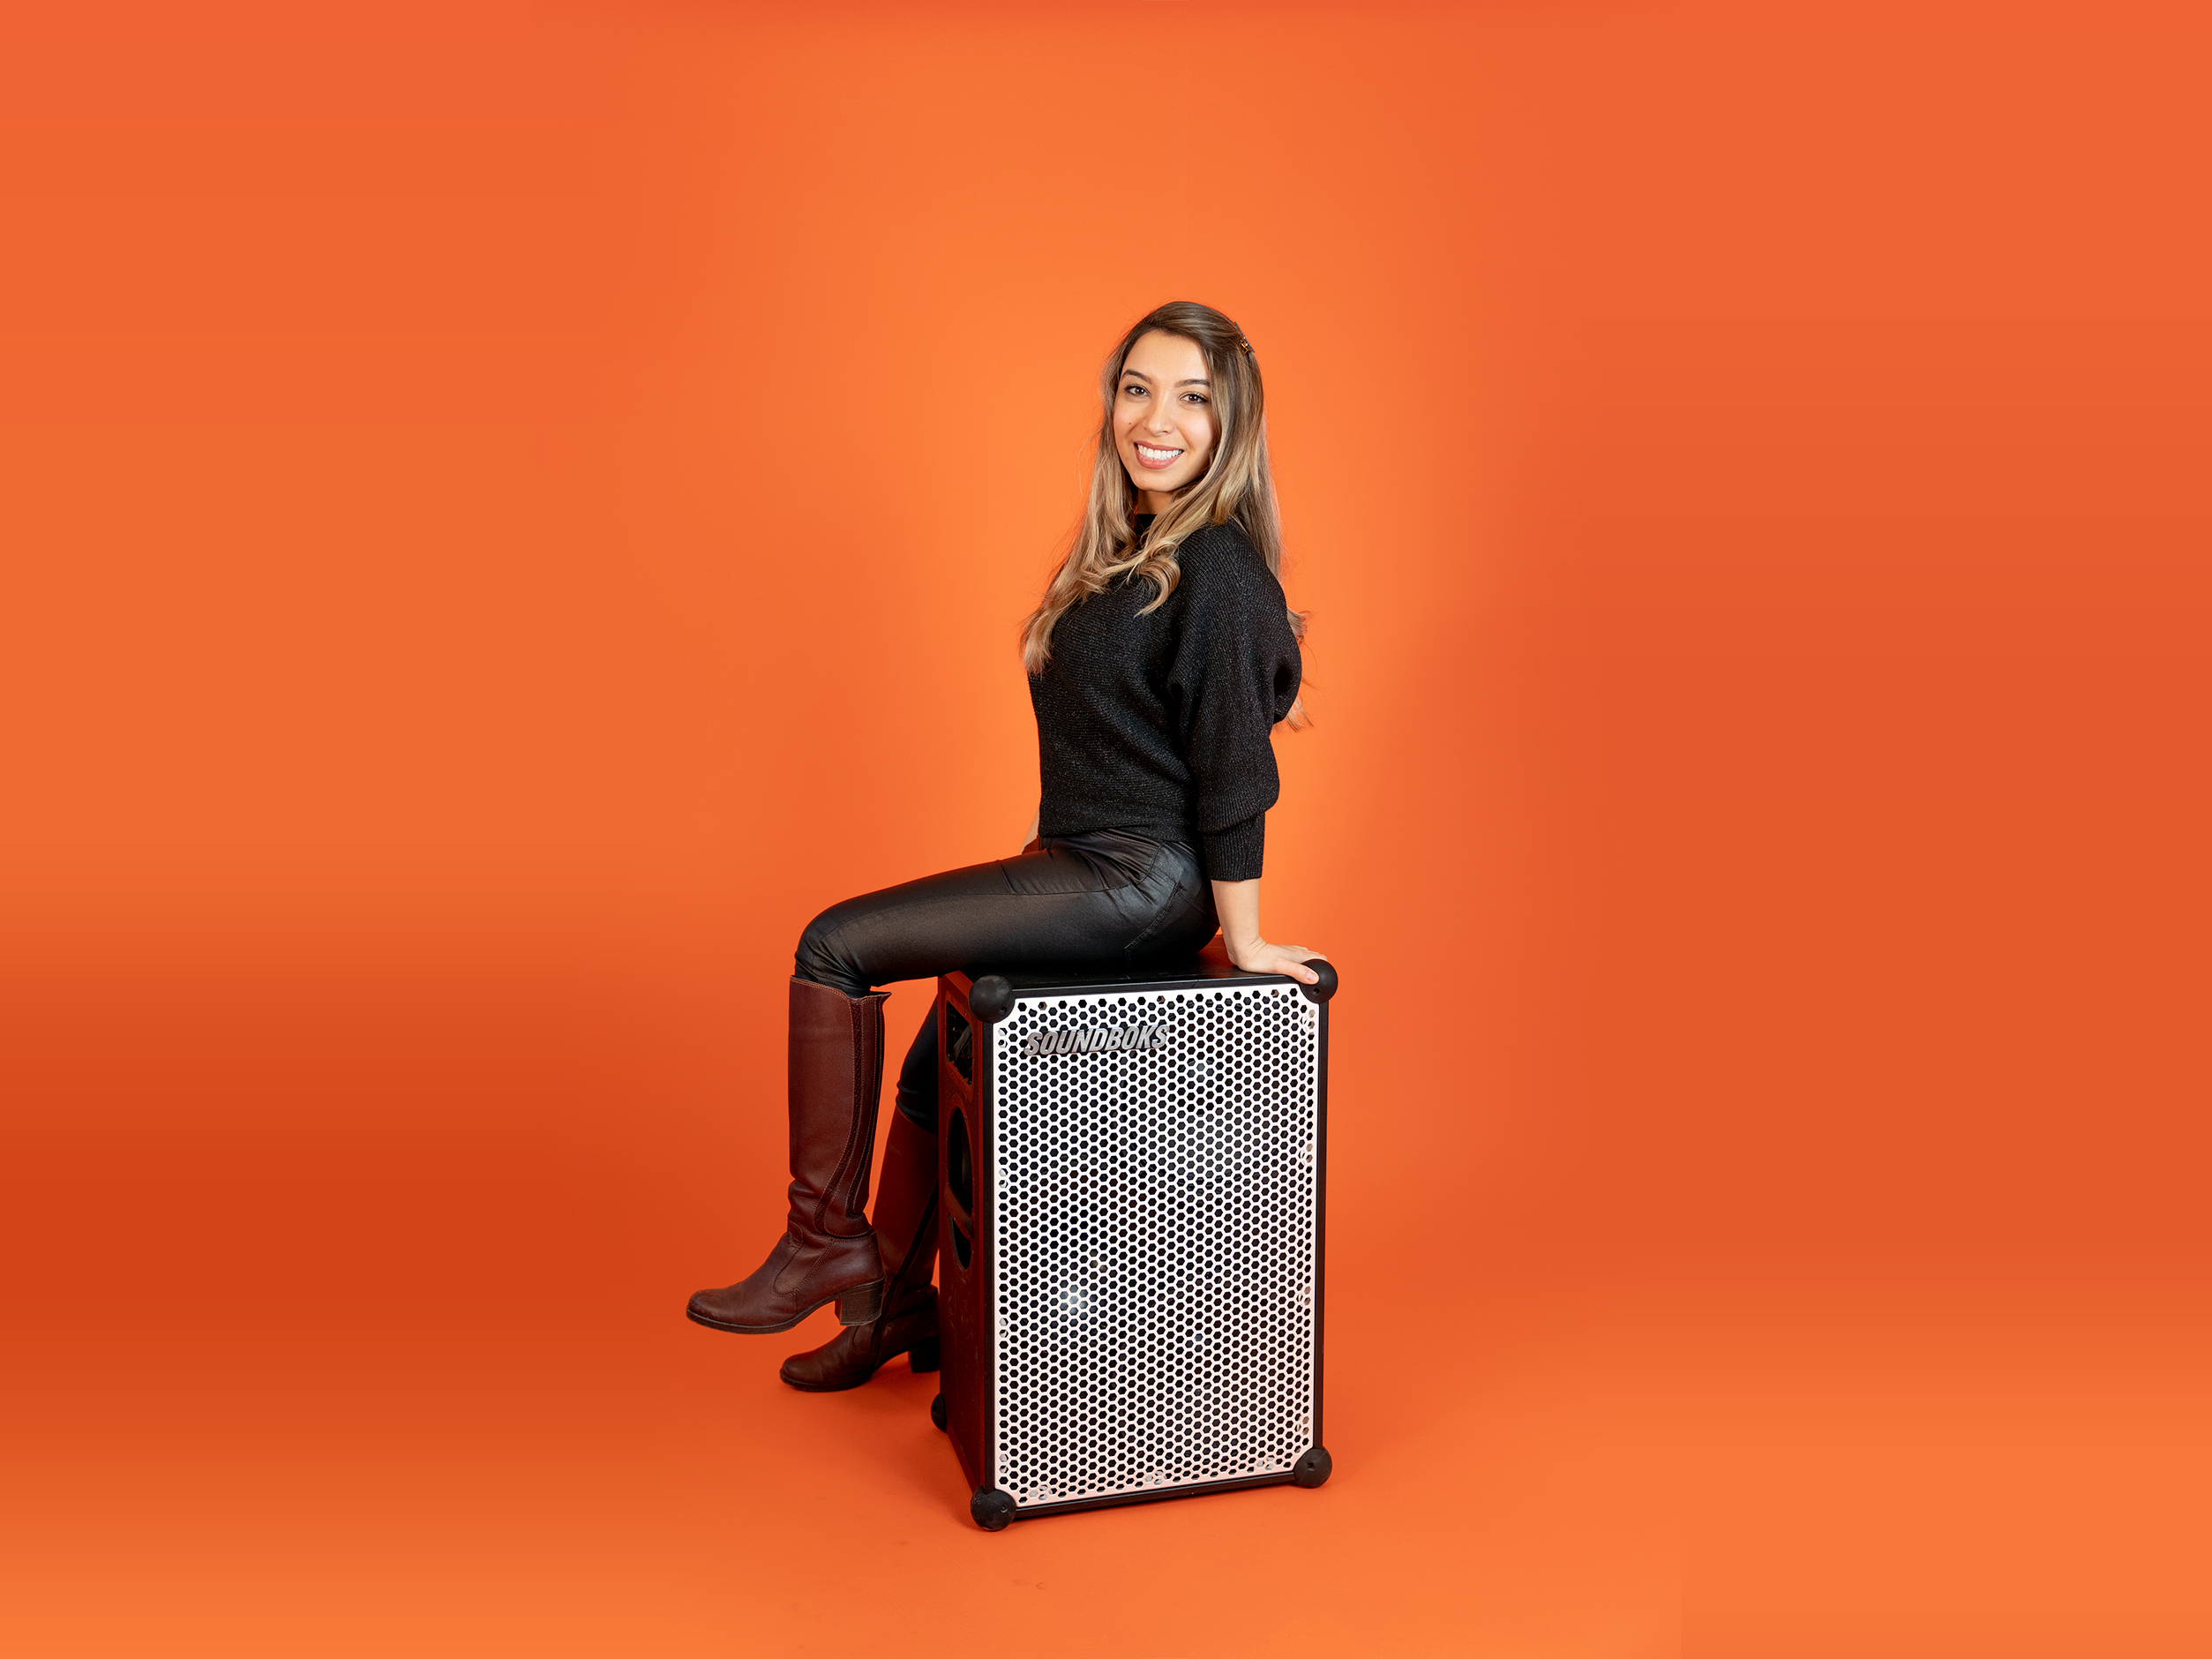 Mehrzad, in a black outfit sitting on top of a SOUNDBOKS in front of an orange background